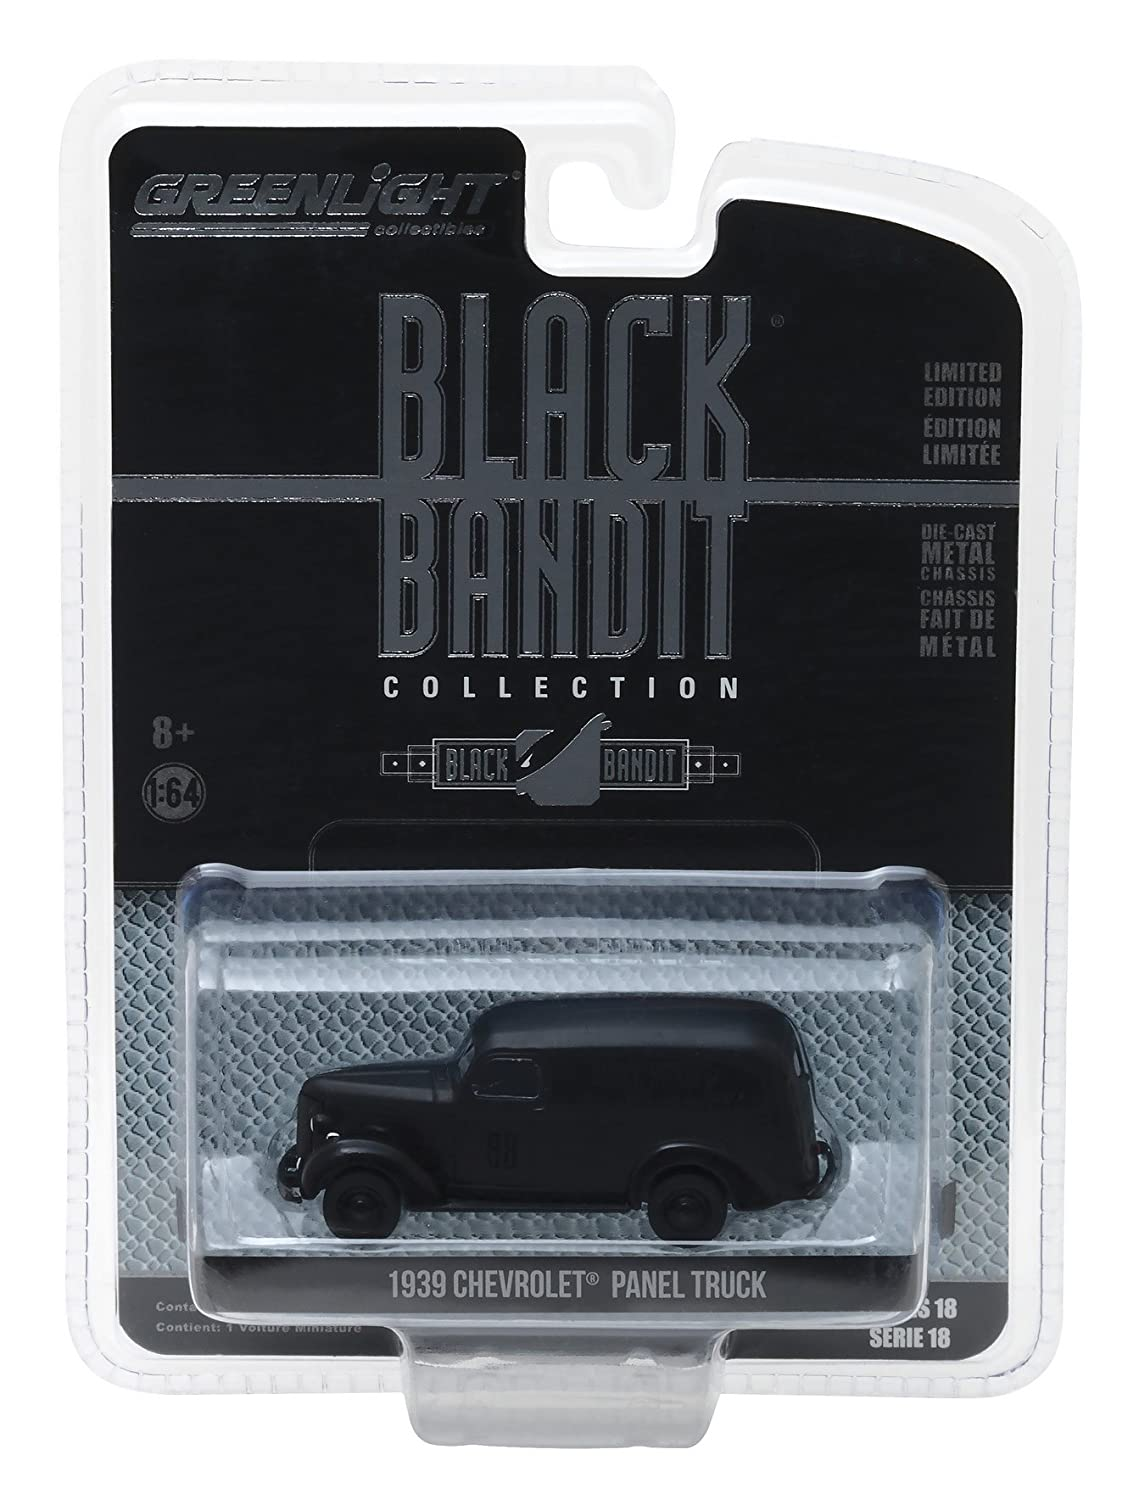 1939 Chevrolet Panel Van Black Bandit 1 64 Diecast Model Car by Greenlight 27930 F